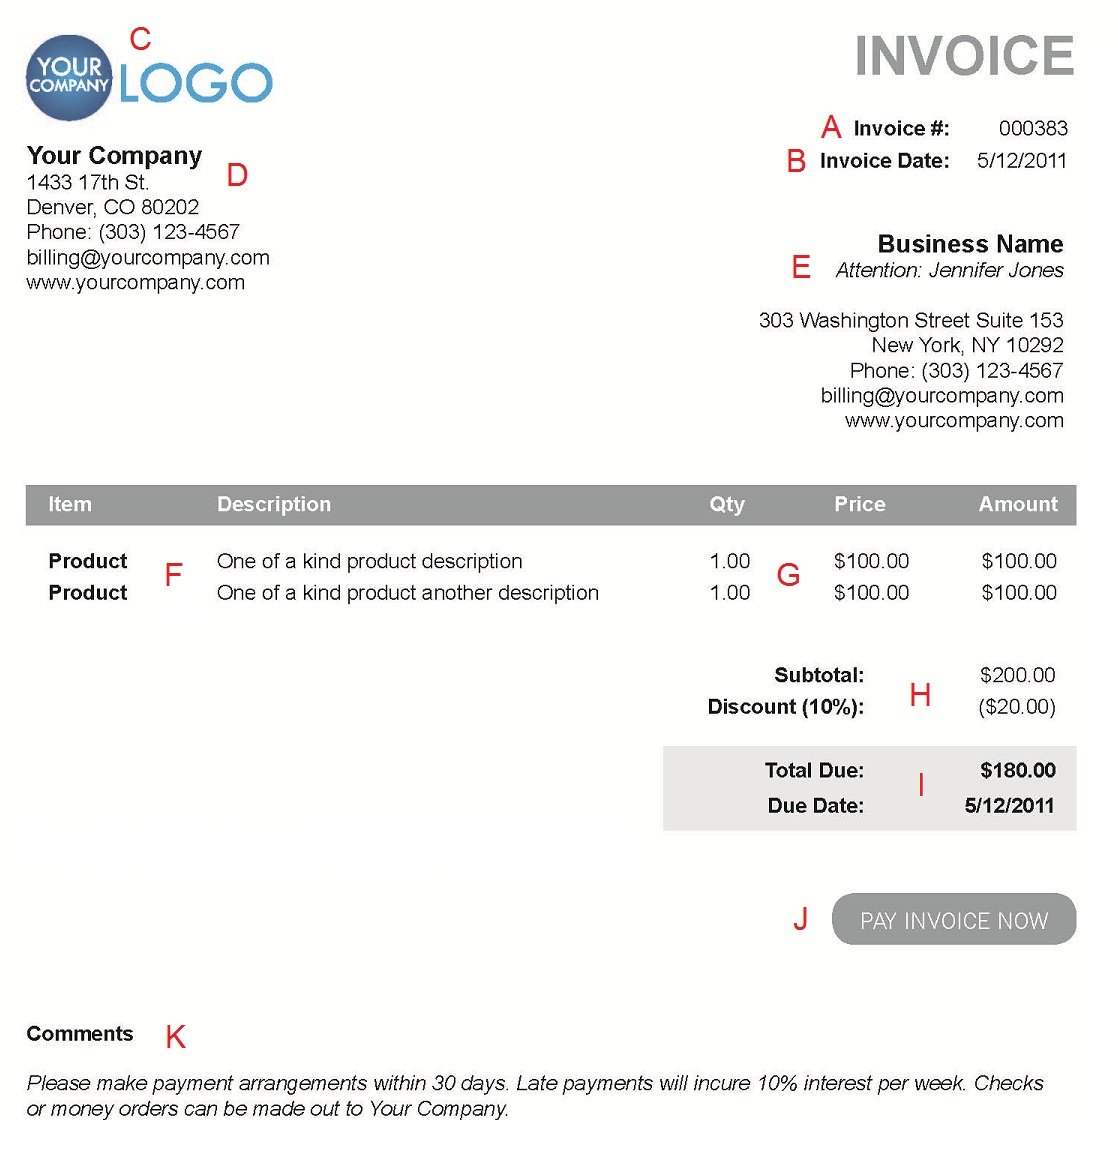 Atvingus  Wonderful The  Different Sections Of An Electronic Payment Invoice With Licious A  With Charming Vat Invoice Template Uk Also Sample Of Sales Invoice In Addition Abn Invoice Template And Invoice Layout Example As Well As What Is A Invoice Used For Additionally Automated Invoicing Software From Paysimplecom With Atvingus  Licious The  Different Sections Of An Electronic Payment Invoice With Charming A  And Wonderful Vat Invoice Template Uk Also Sample Of Sales Invoice In Addition Abn Invoice Template From Paysimplecom